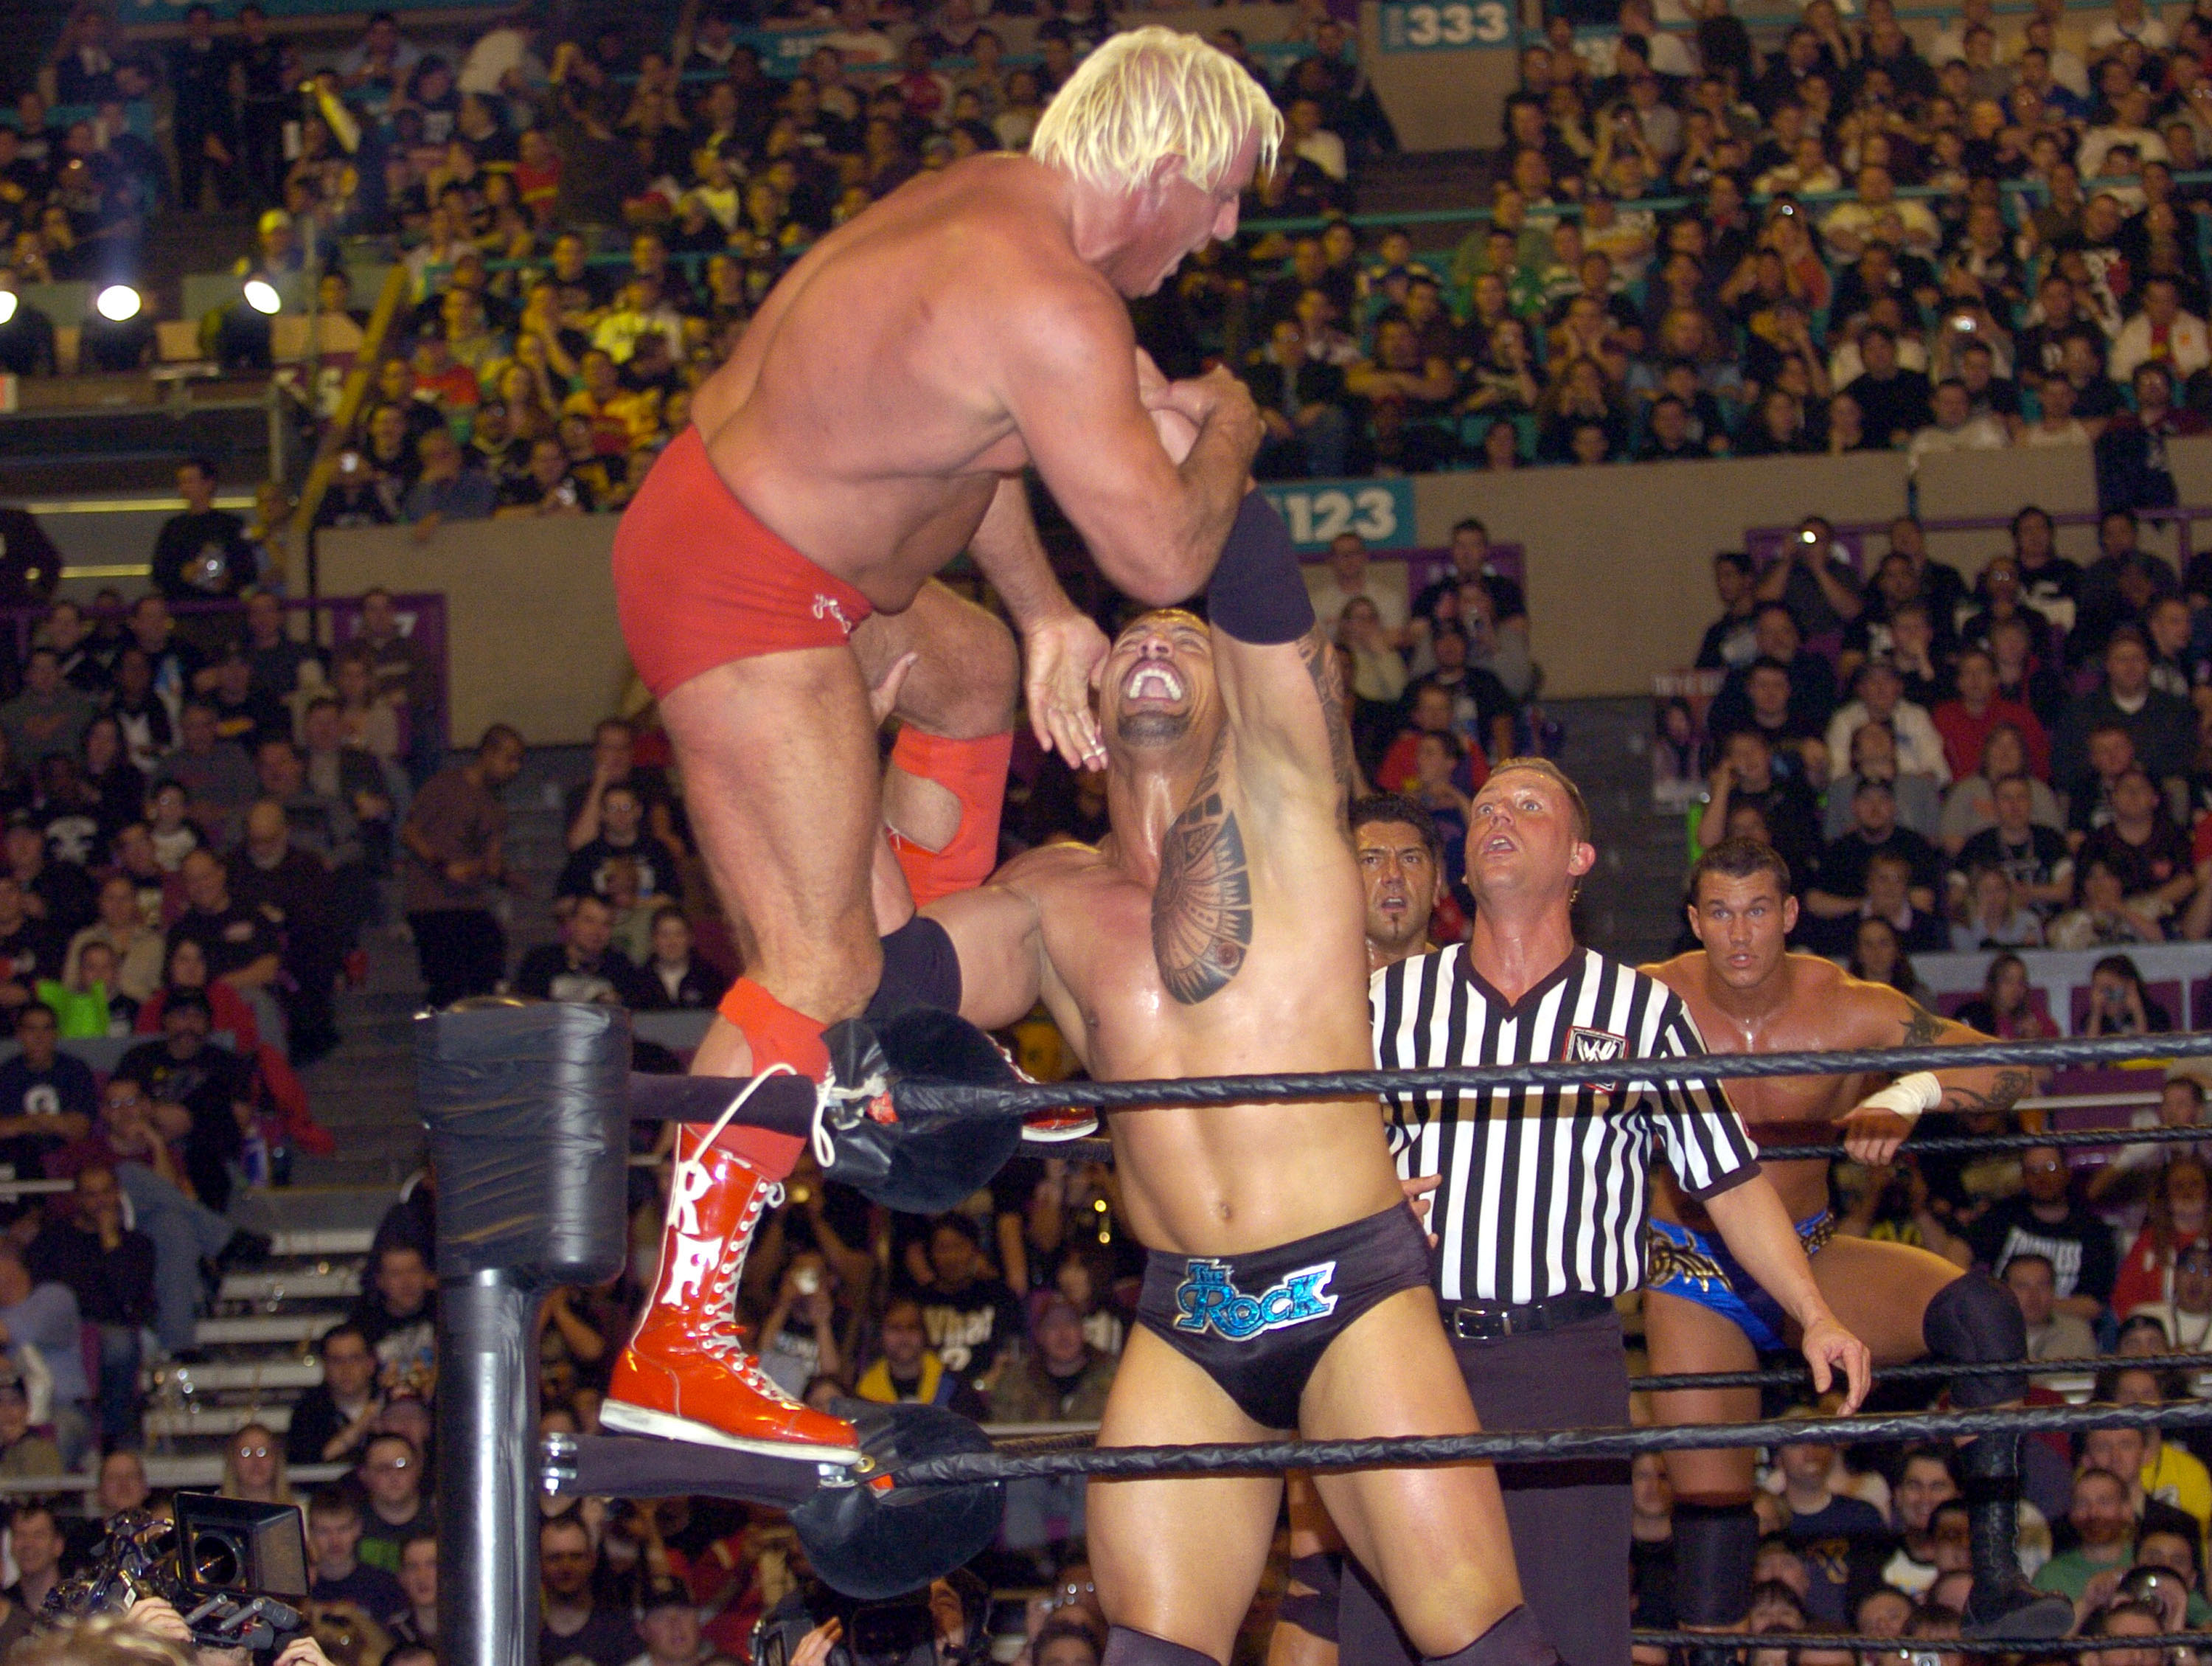 Ric Flair vs The Rock